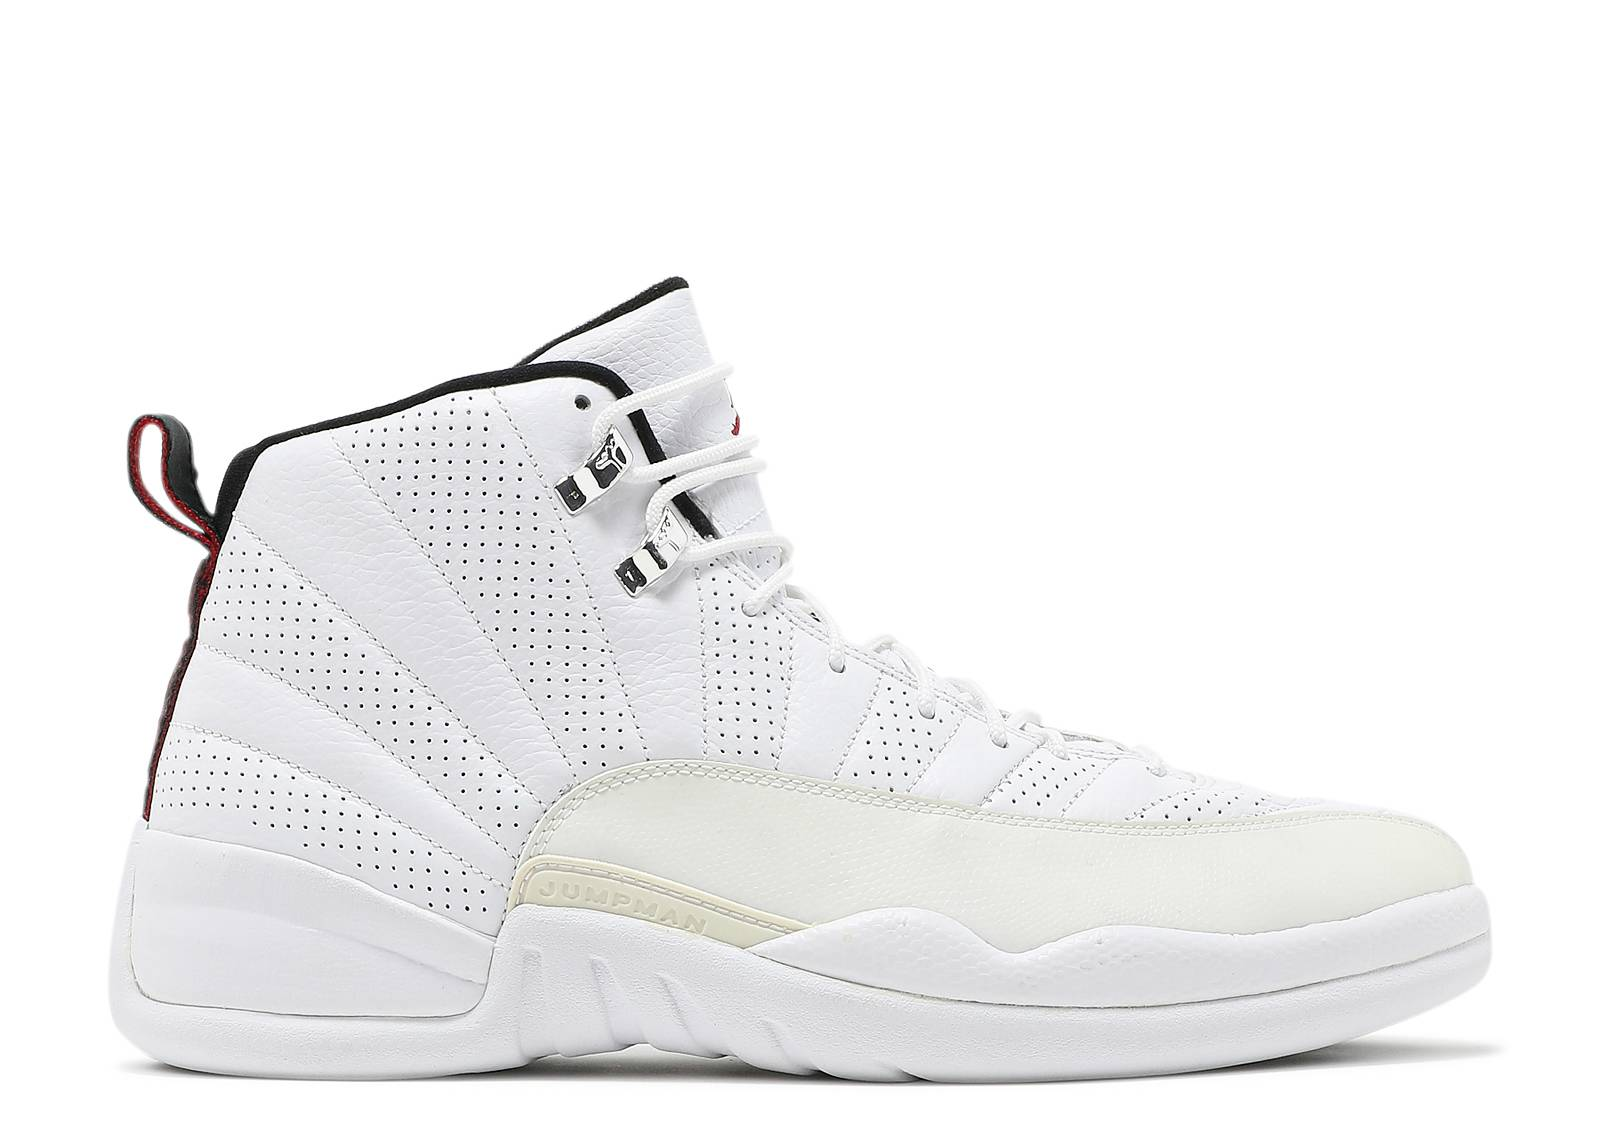 retro air jordans 12 white